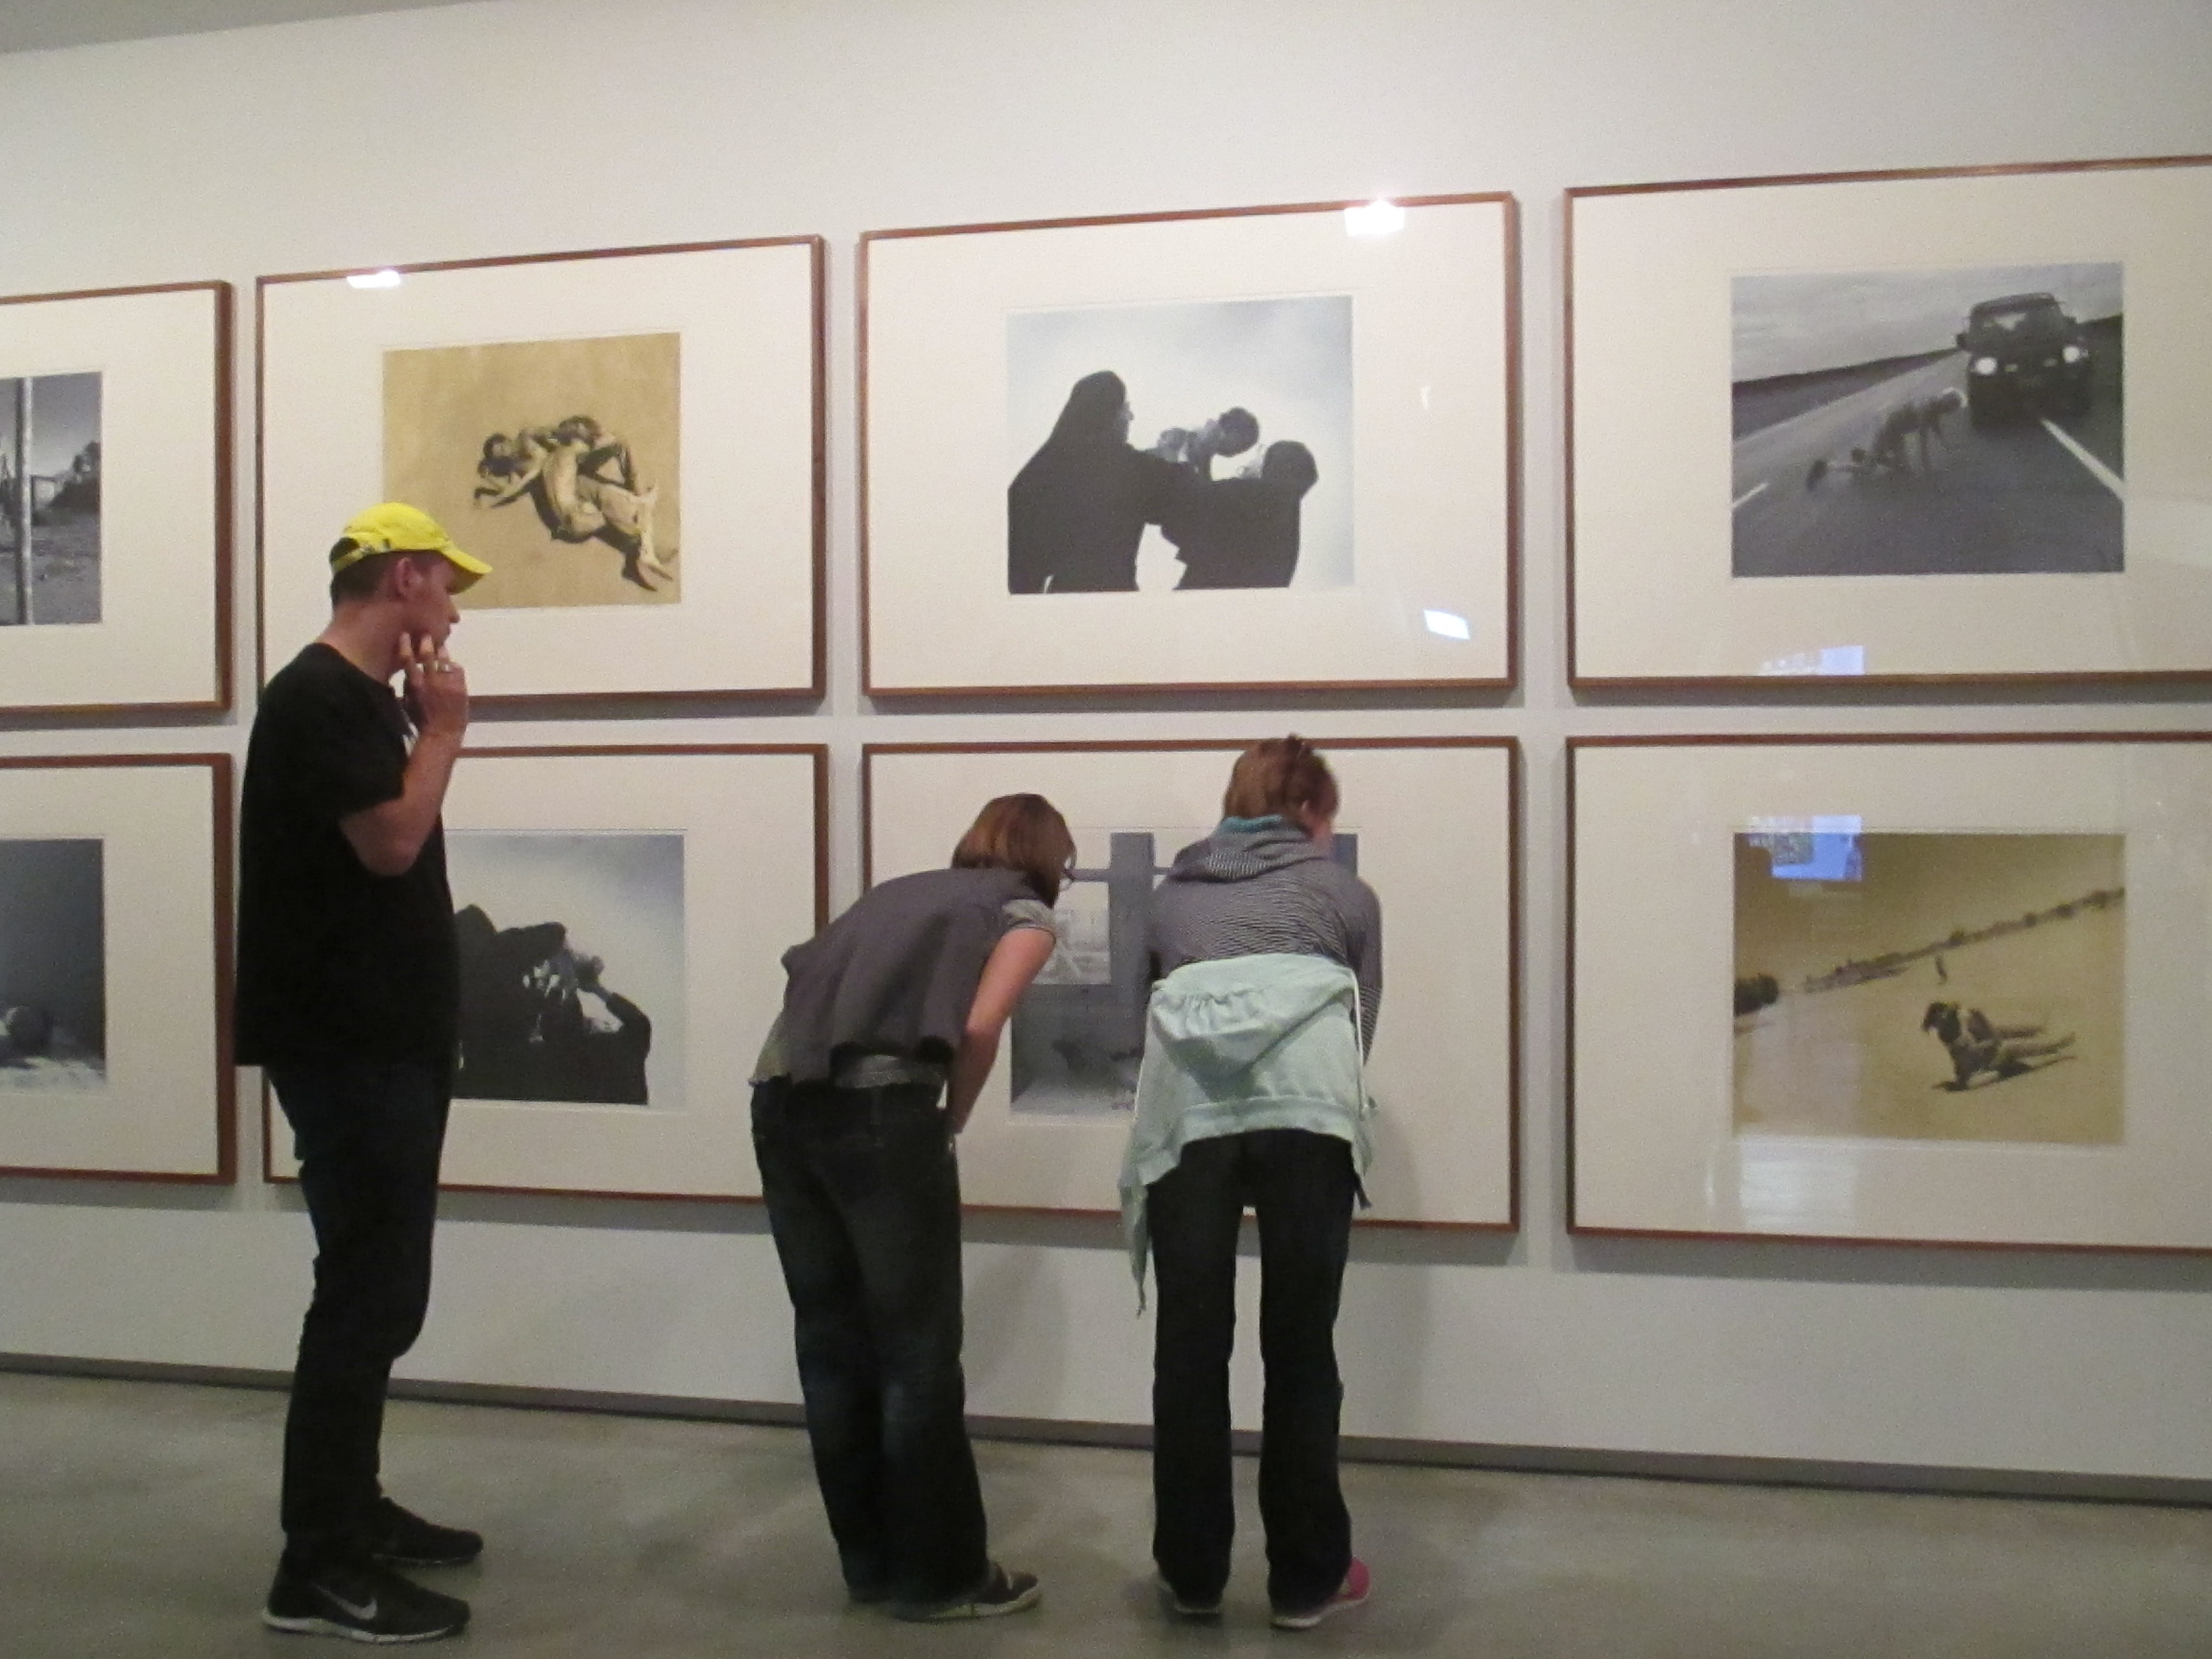 Gallery Visits